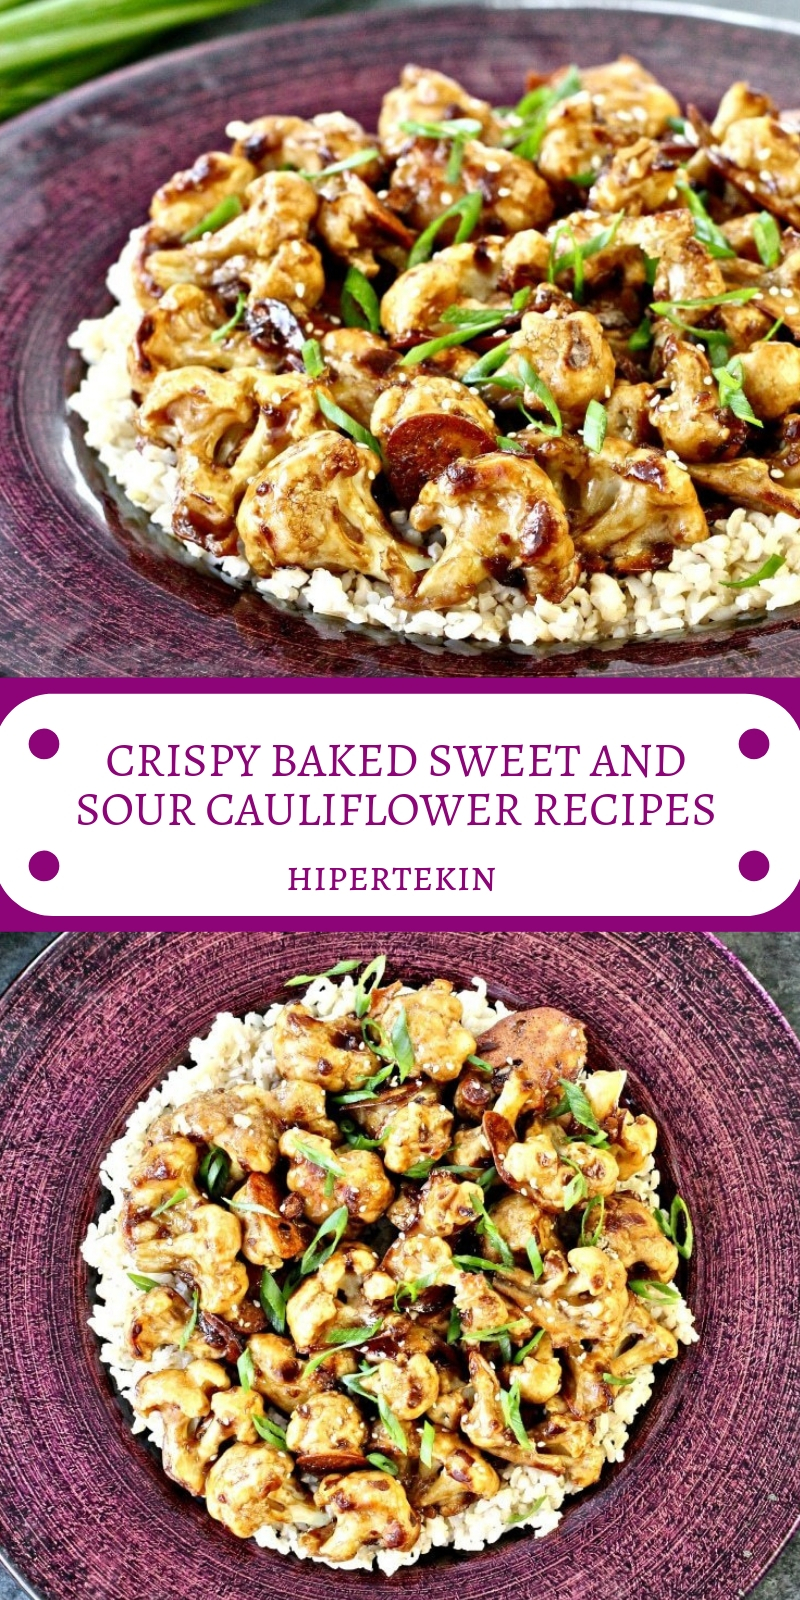 CRISPY BAKED SWEET AND SOUR CAULIFLOWER RECIPES